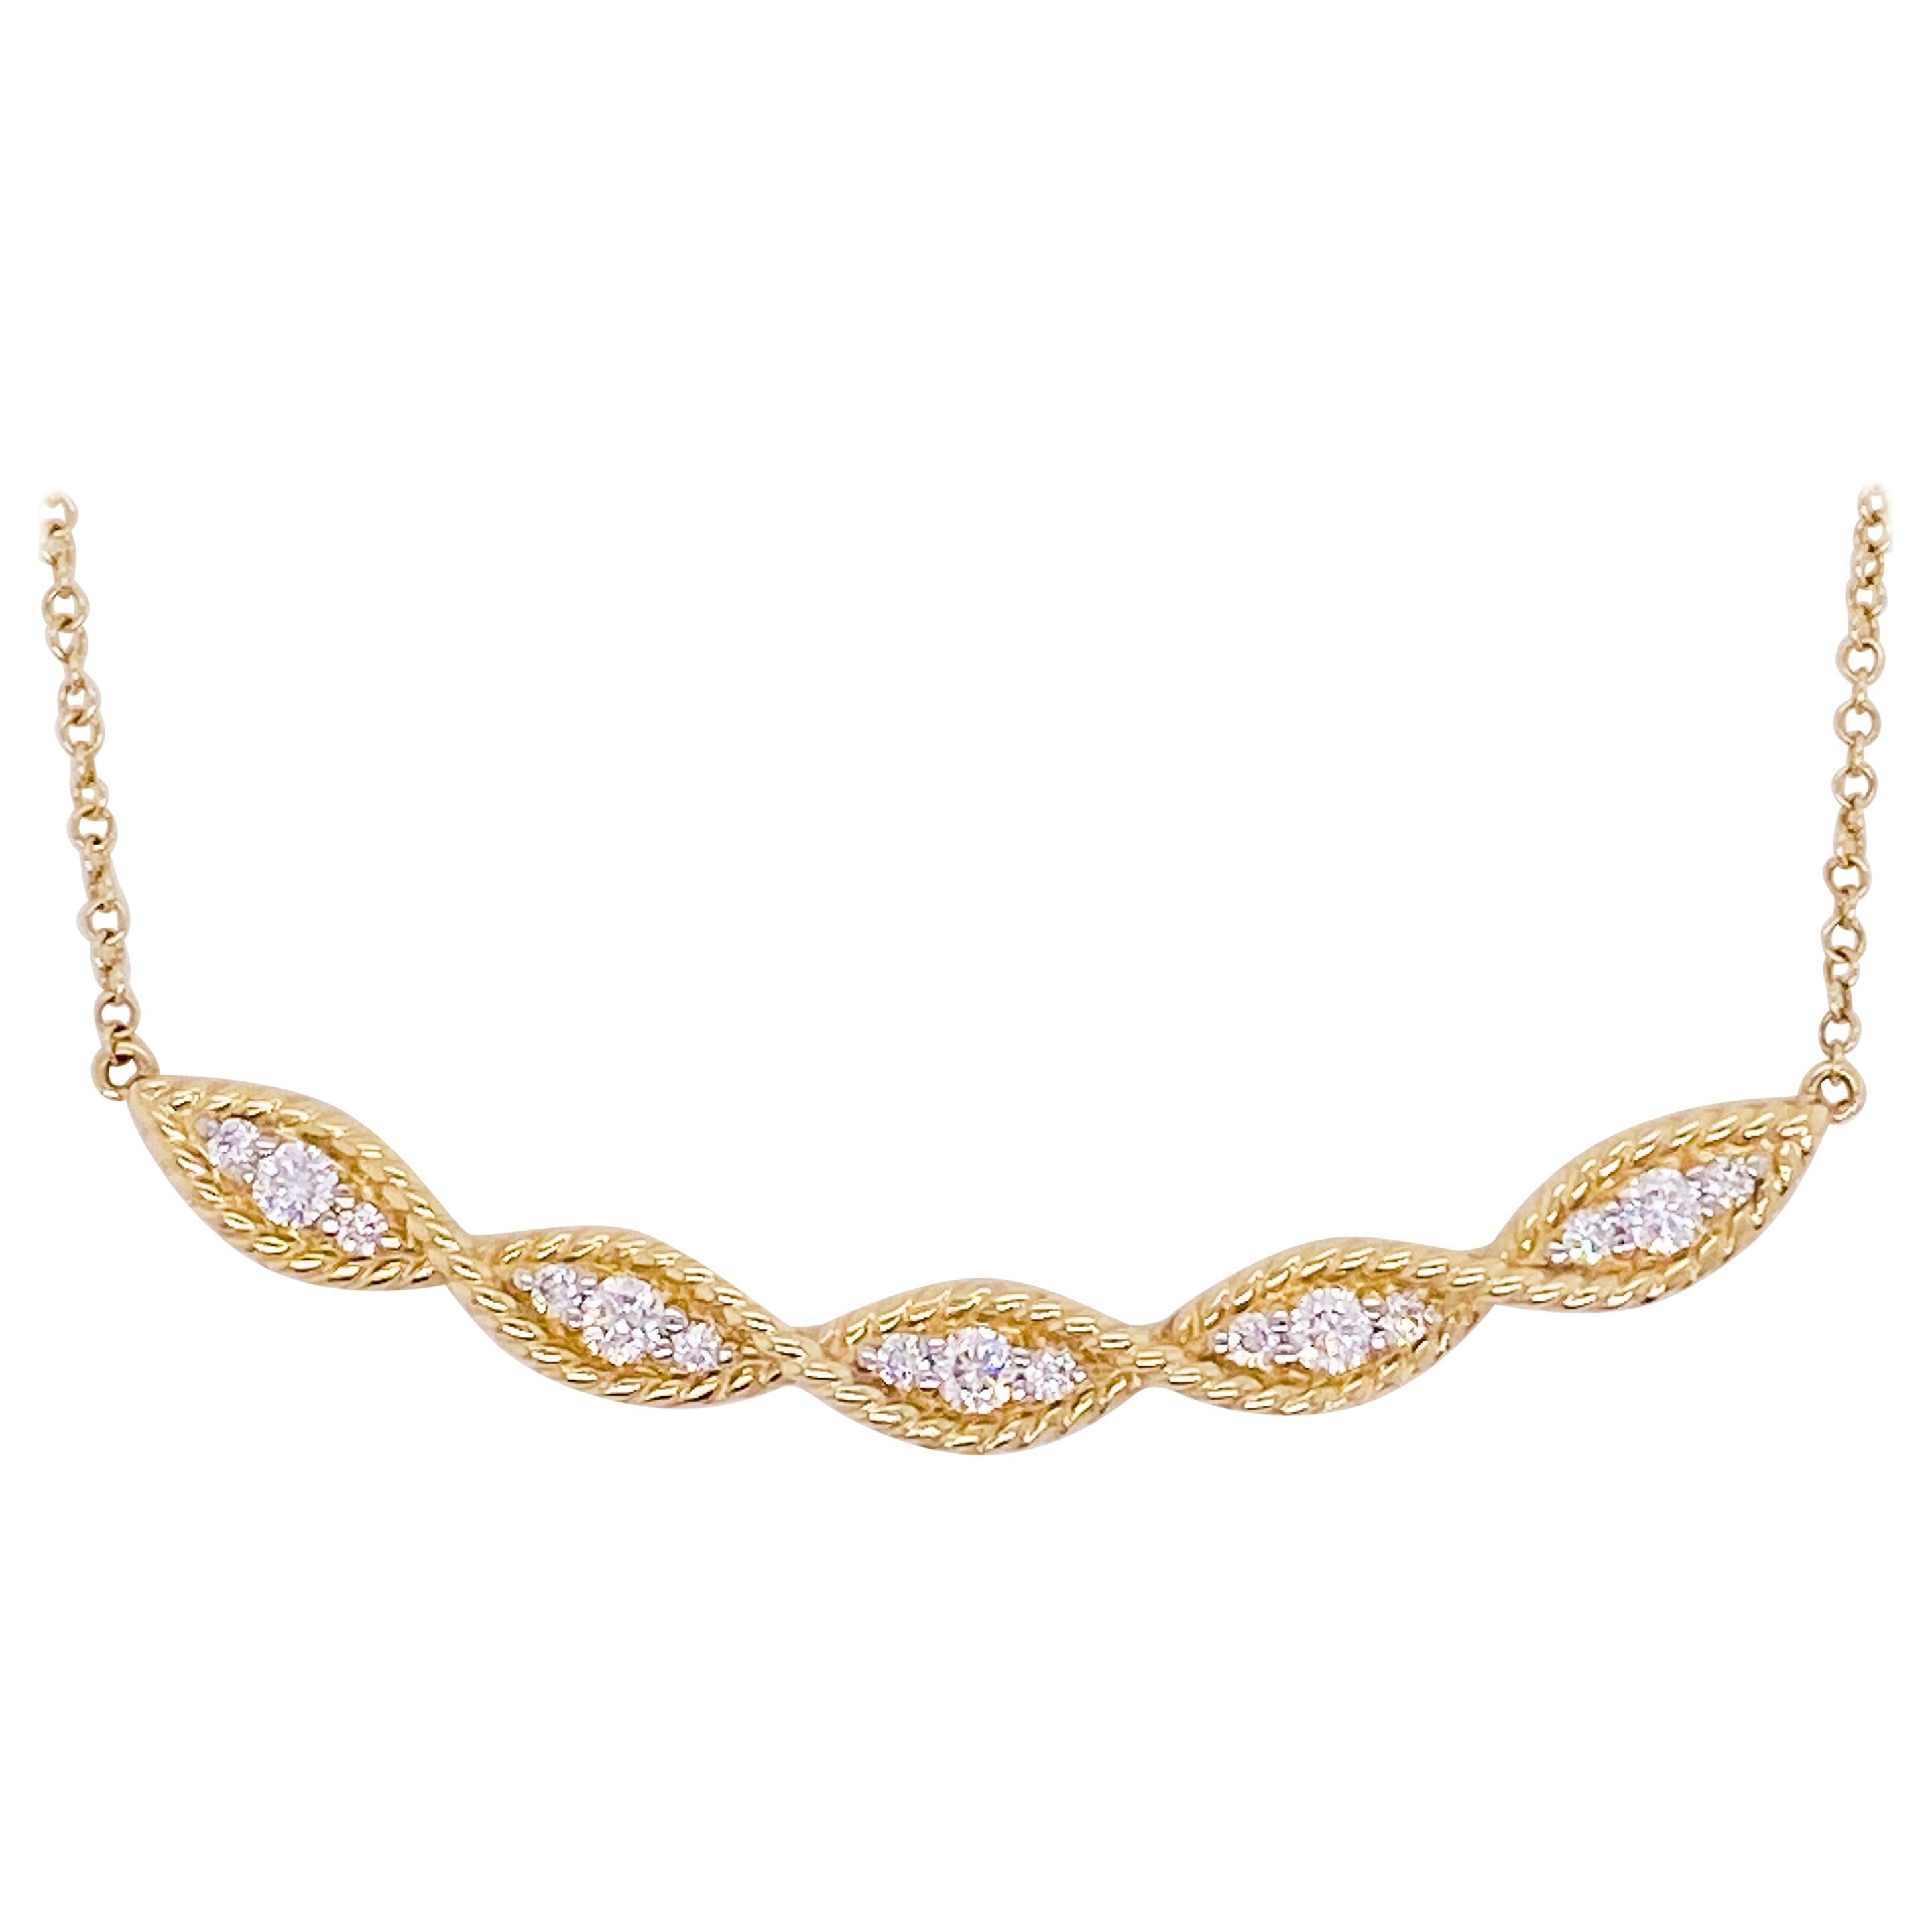 Curved Diamond Necklace, 14 Karat Gold Twisted Rope Bar, NeckMess, NK6085Y45JJ